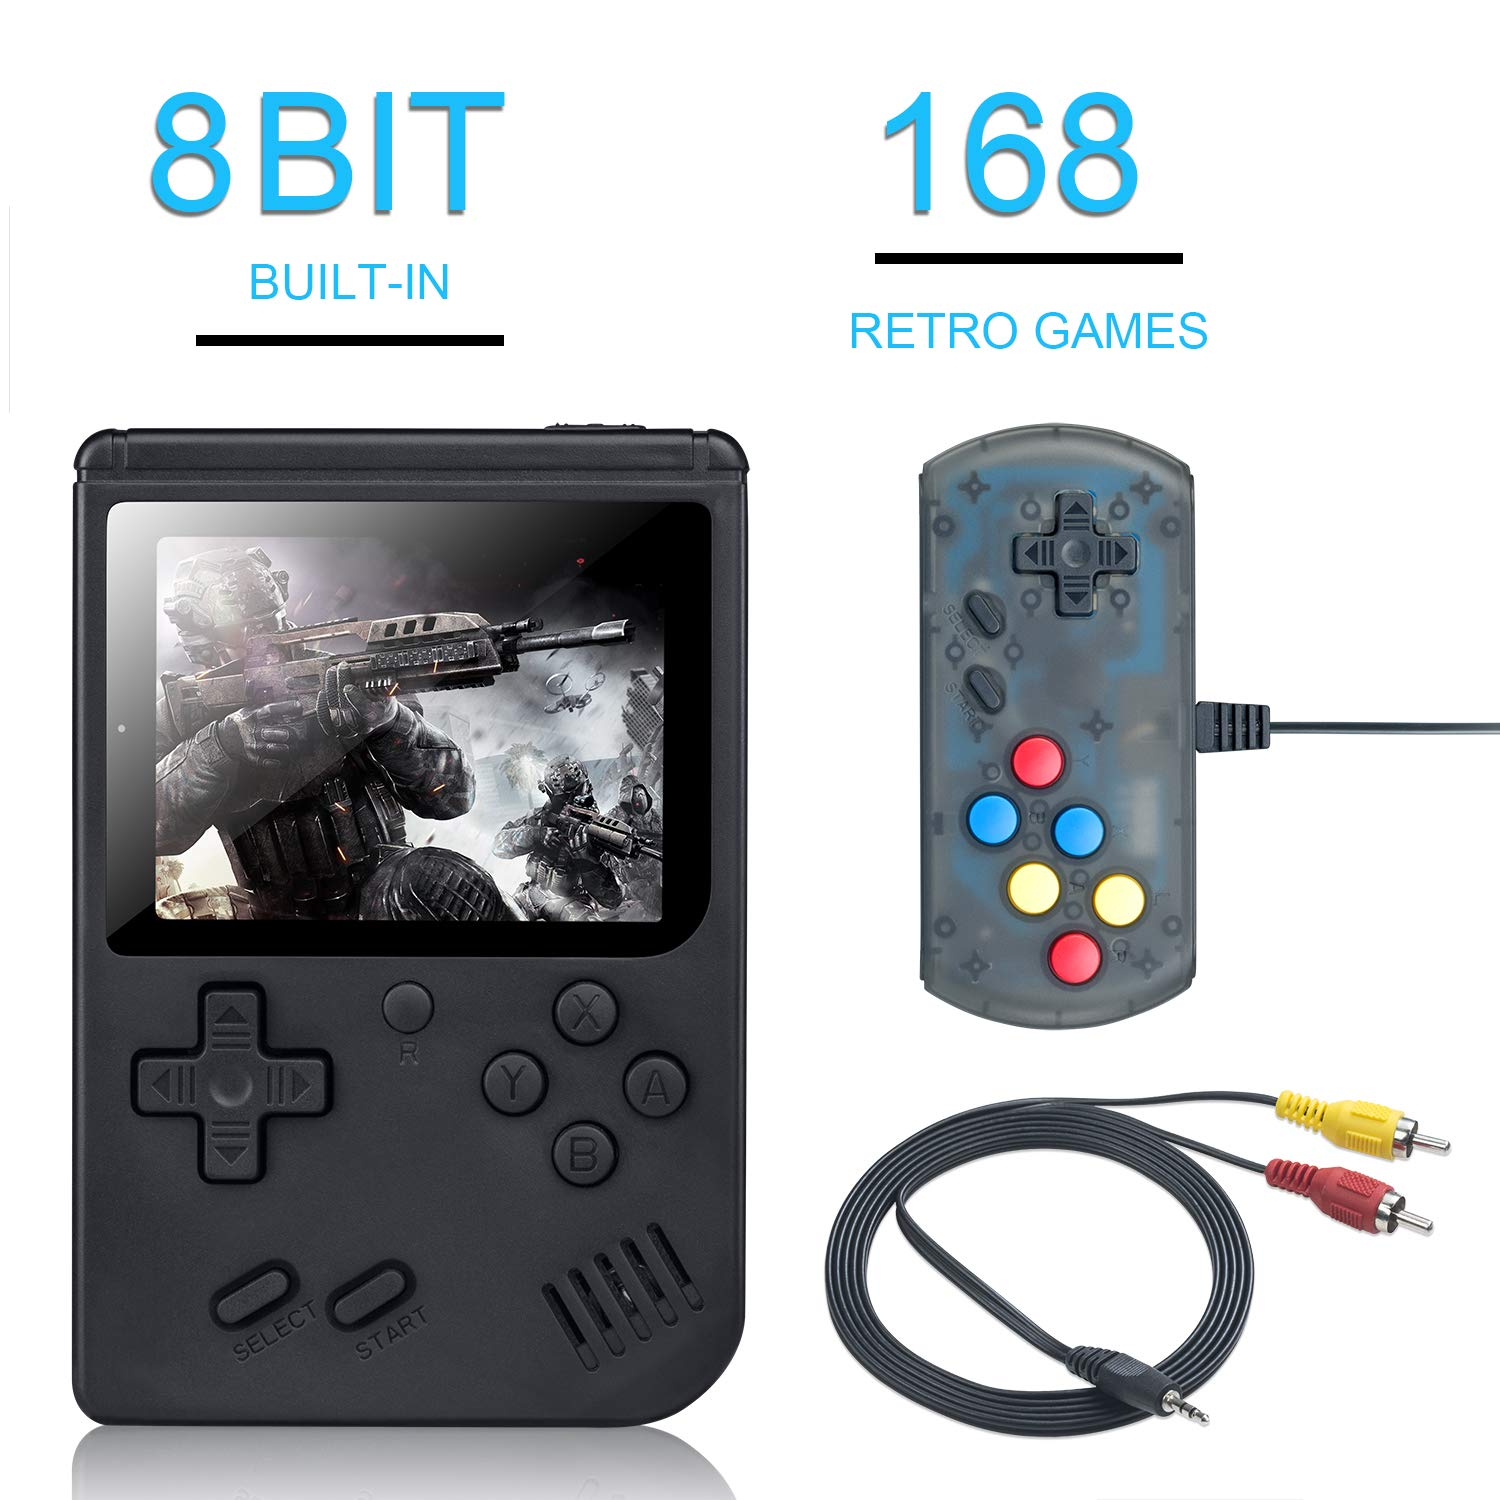 children mini boy video handheld game 168 in 1 players console 8 bit retro video game console 8bit for Child Nostalgic Player(China)